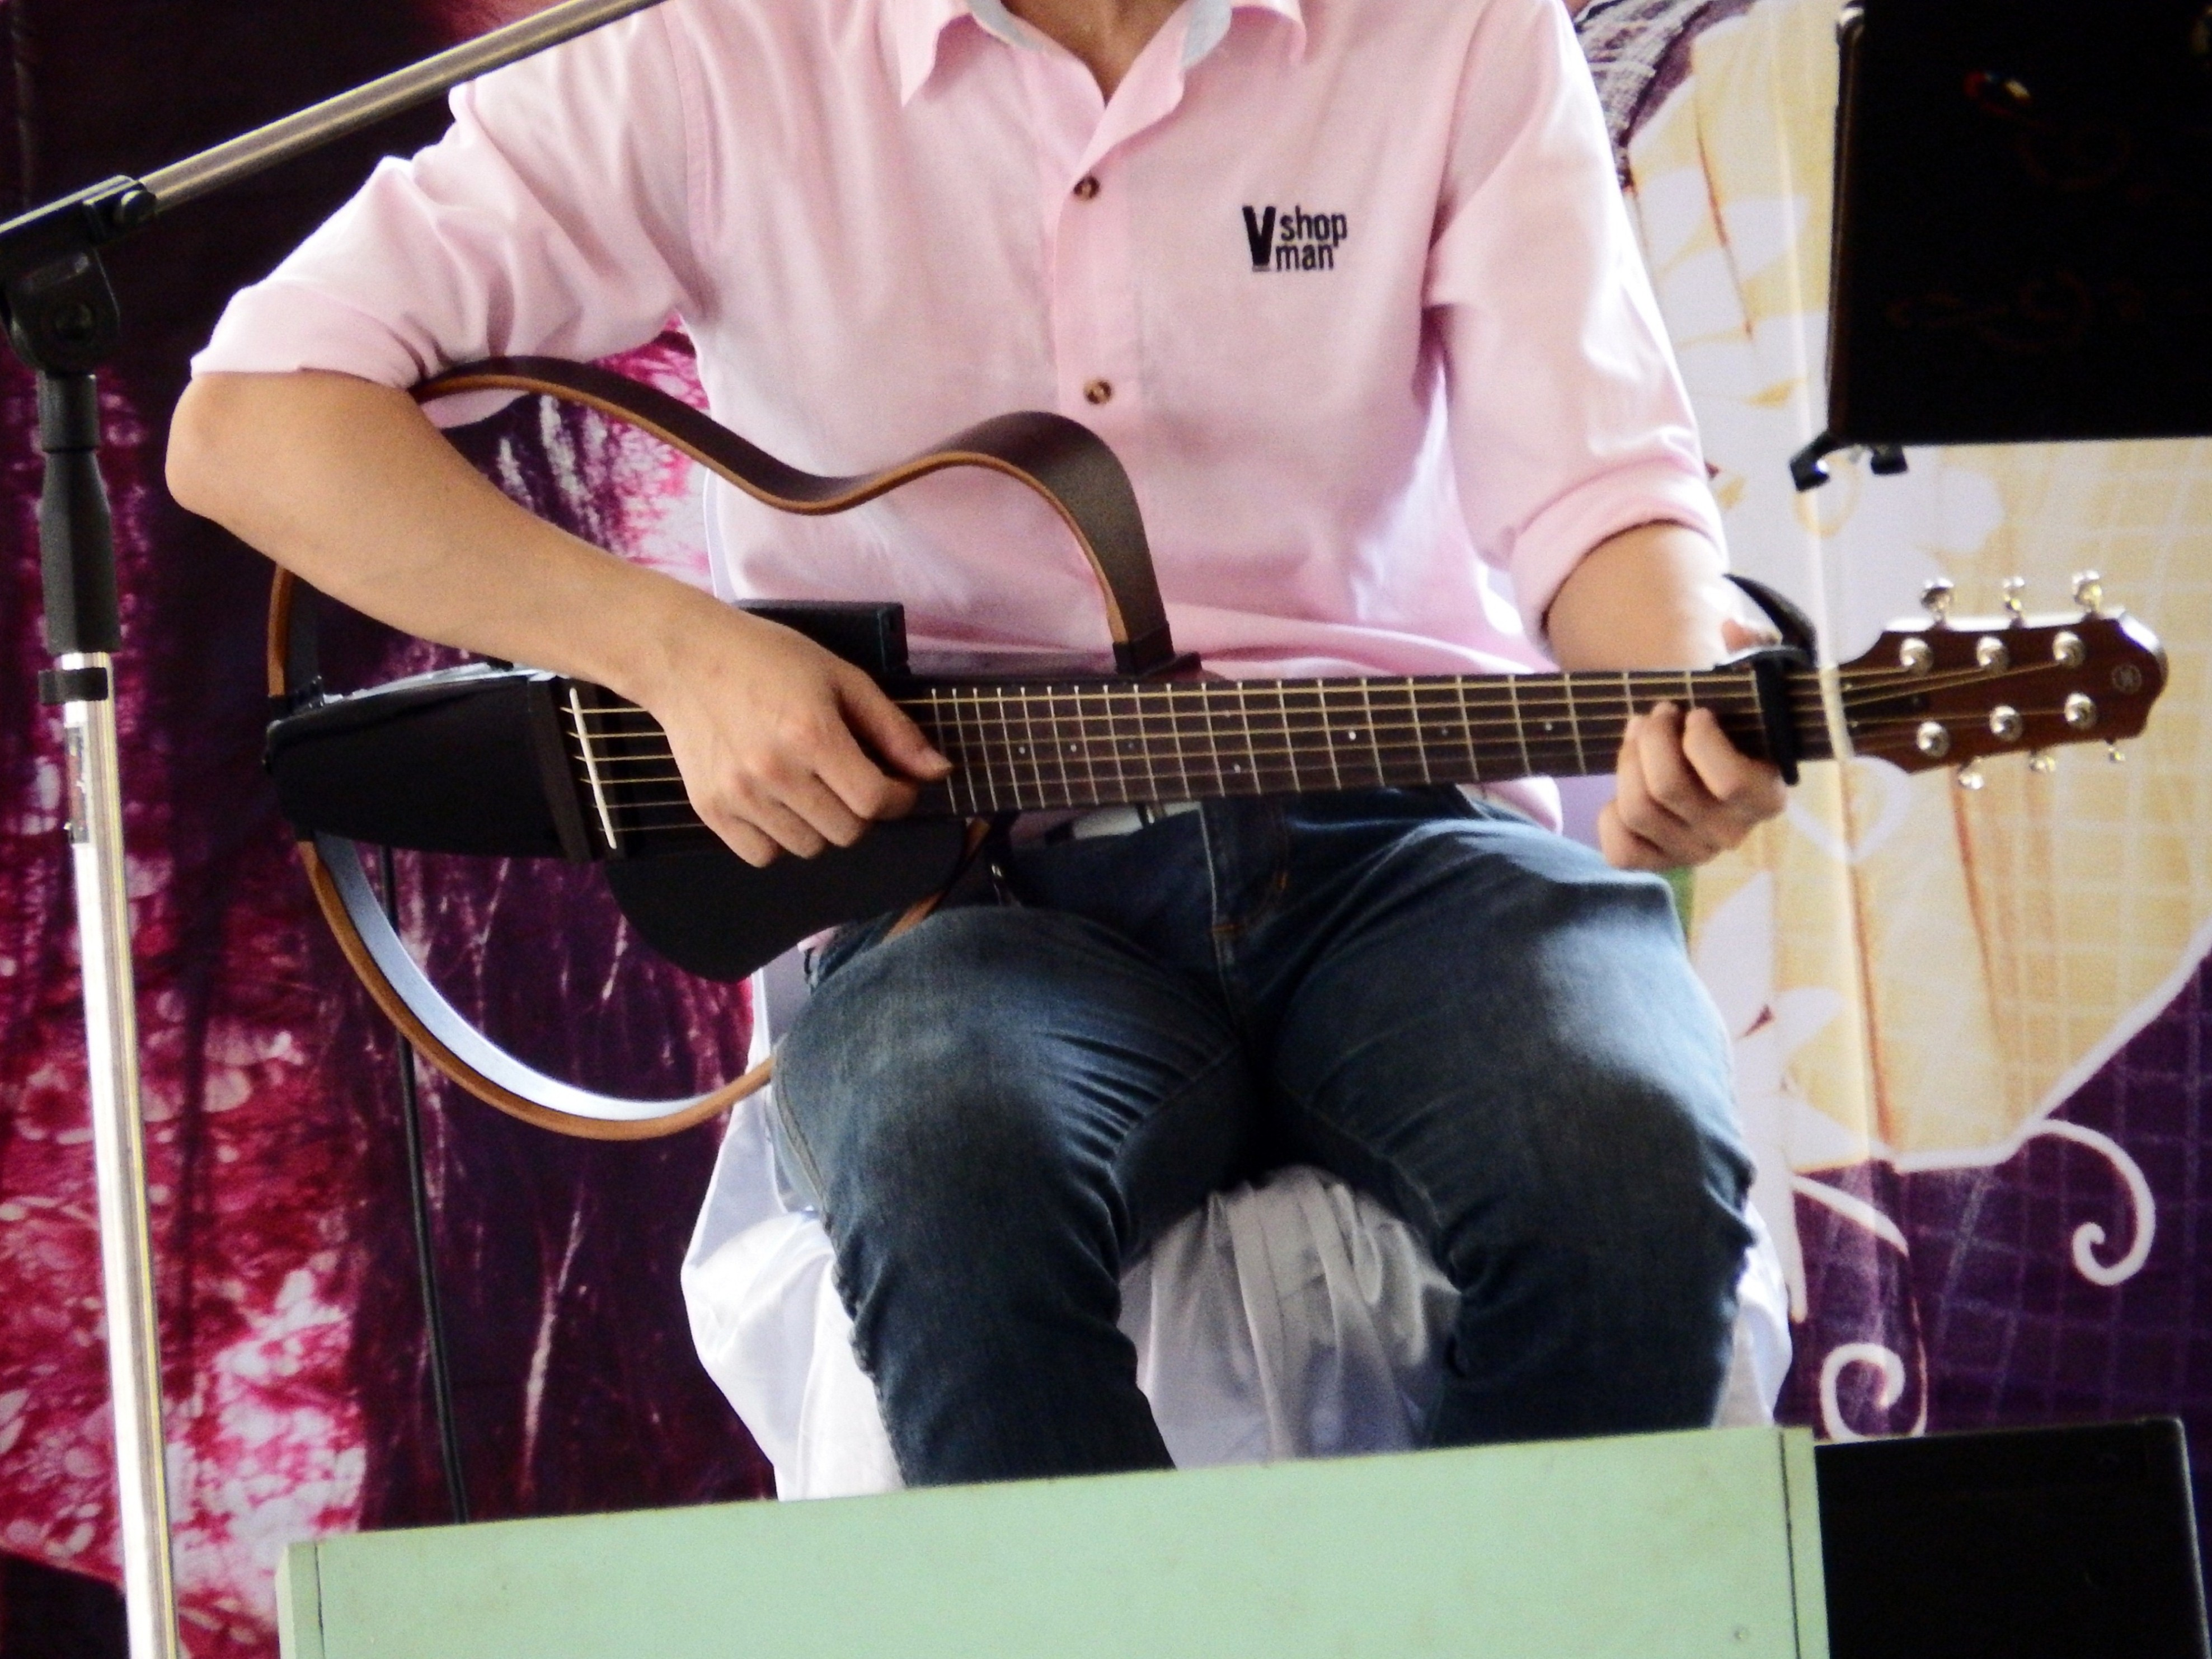 Guitarist playing guitar, Acoustic, Music, Show, Playing, HQ Photo